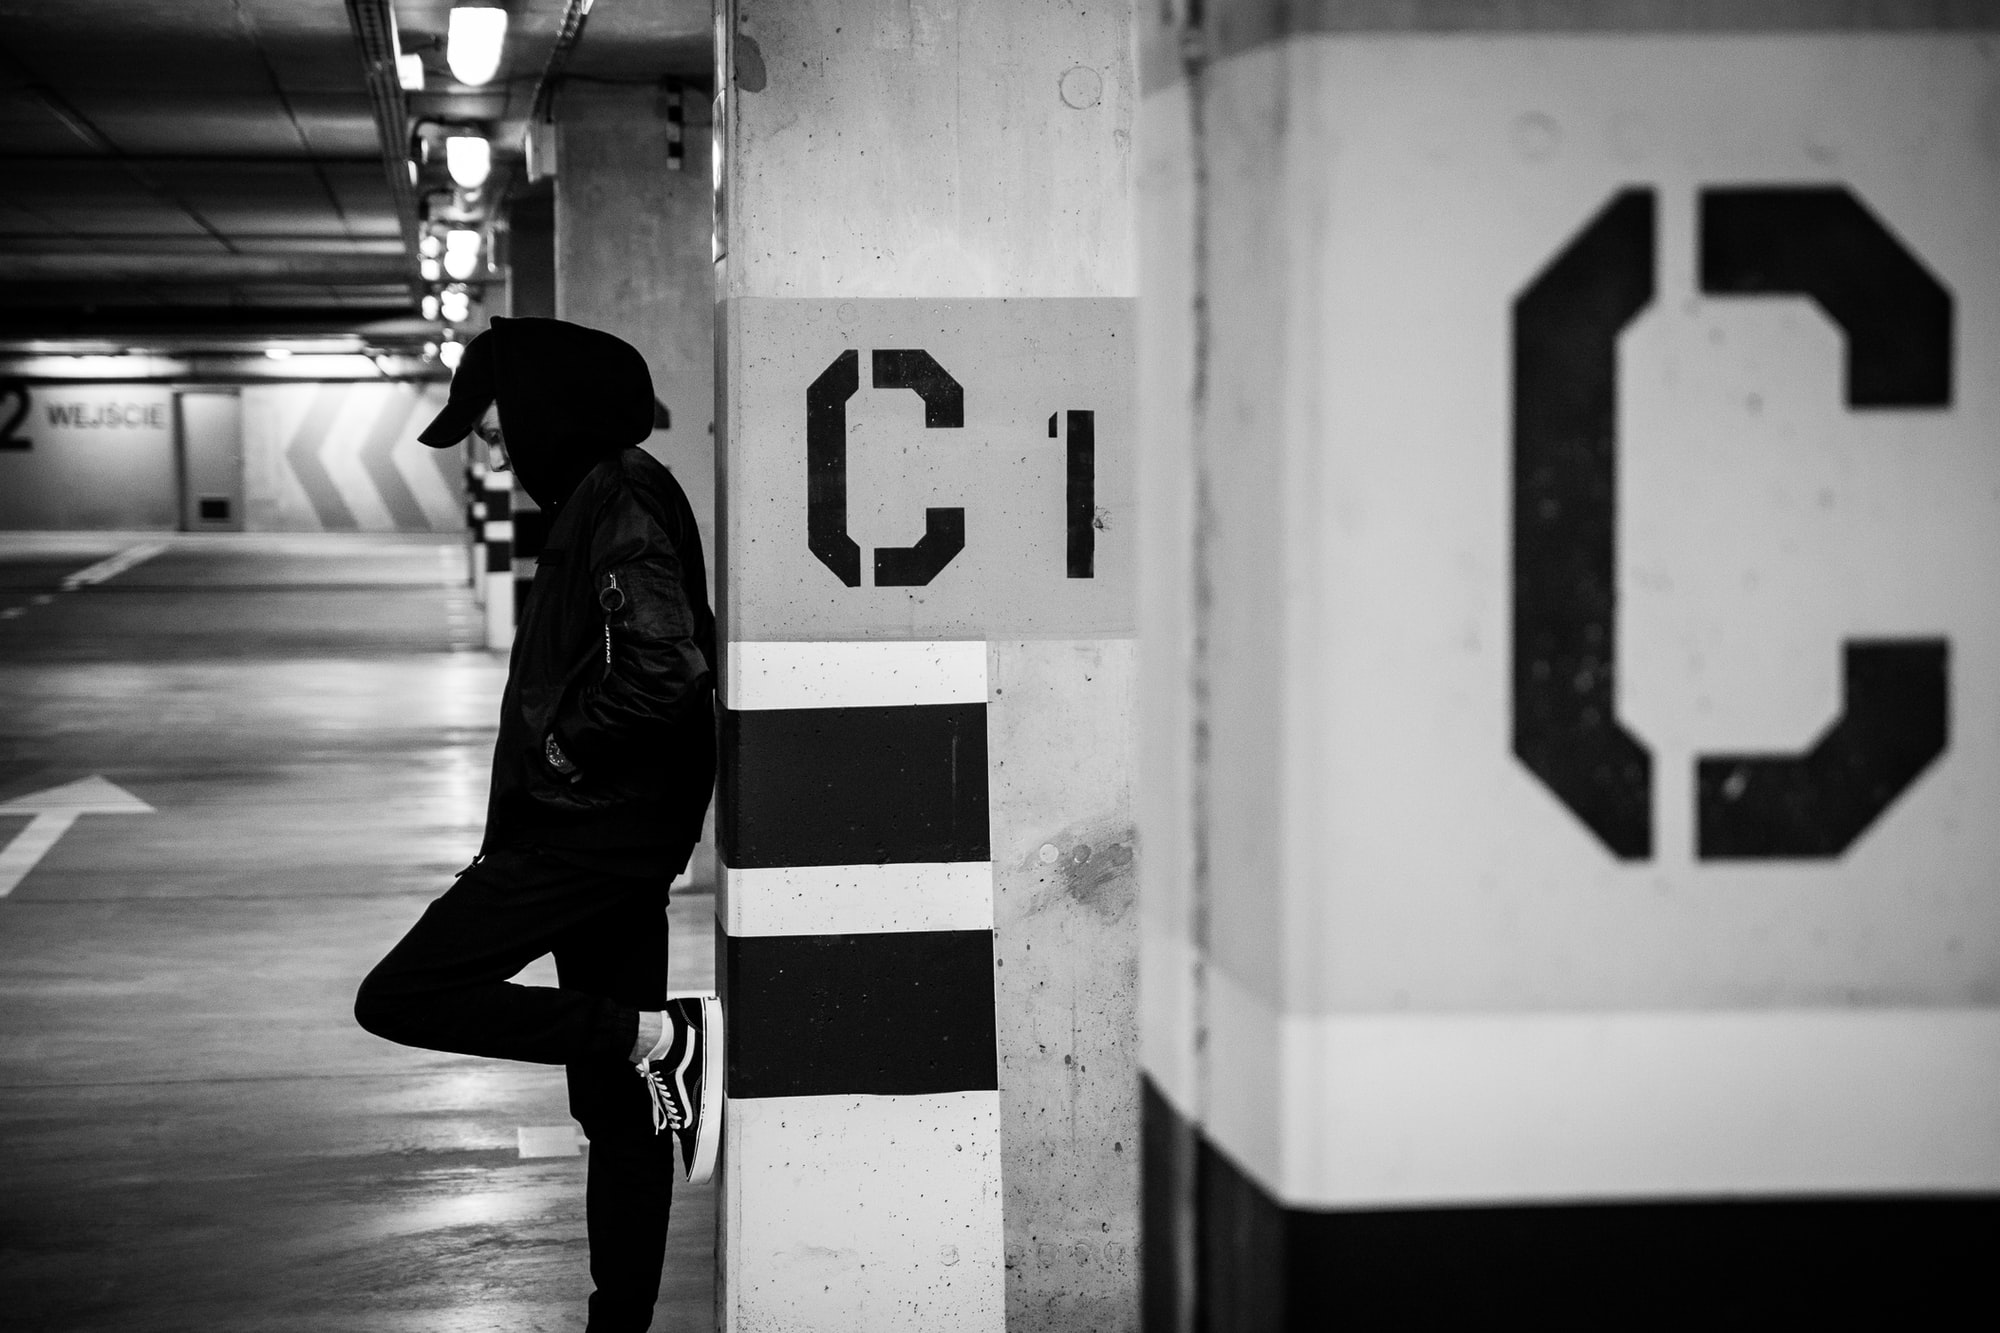 c sign and man in car park